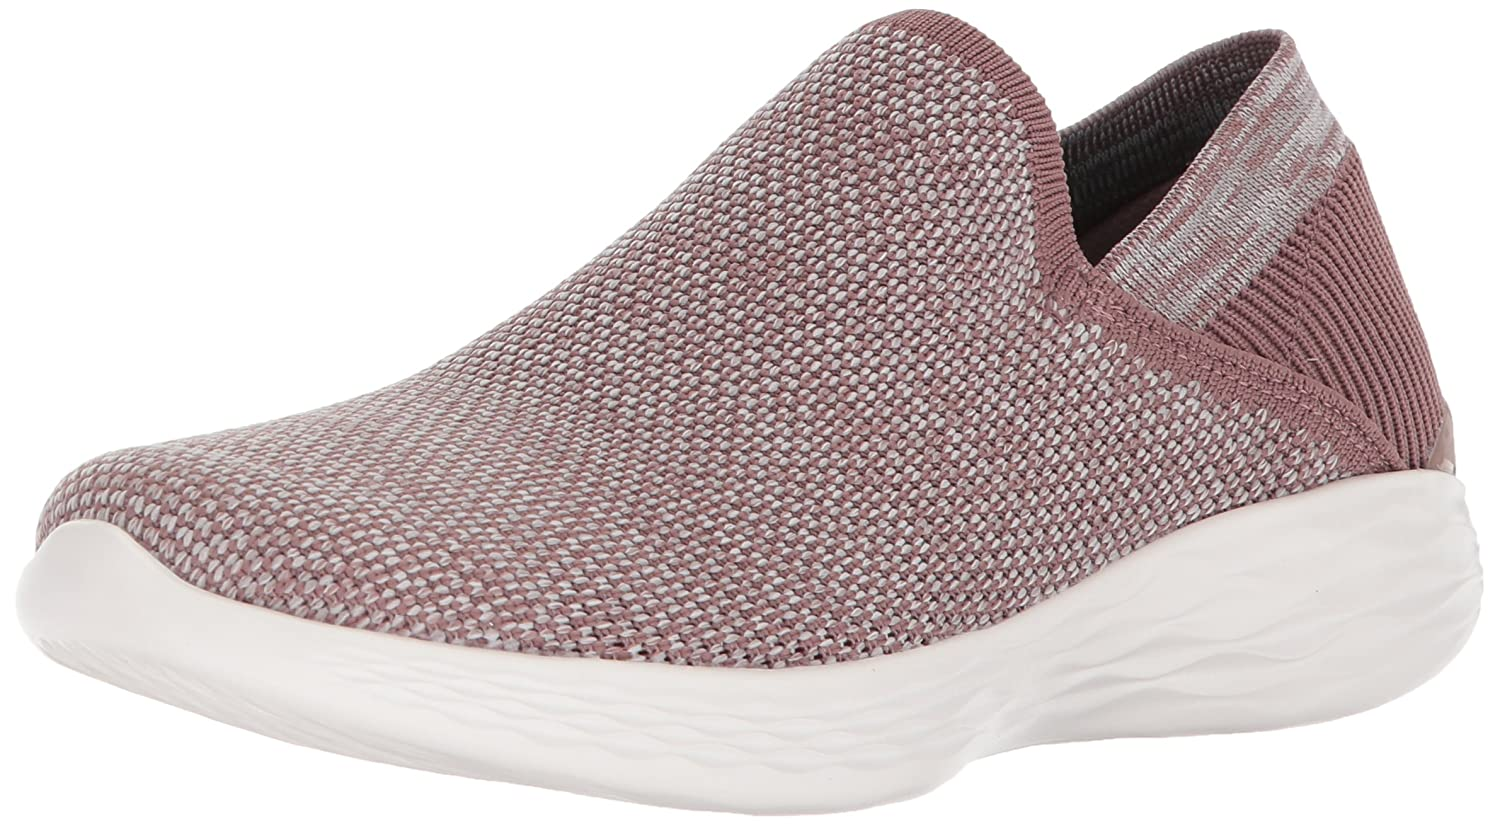 Skechers Women's You-14958 Sneaker B071K16RYF 9.5 B(M) US|Mauve